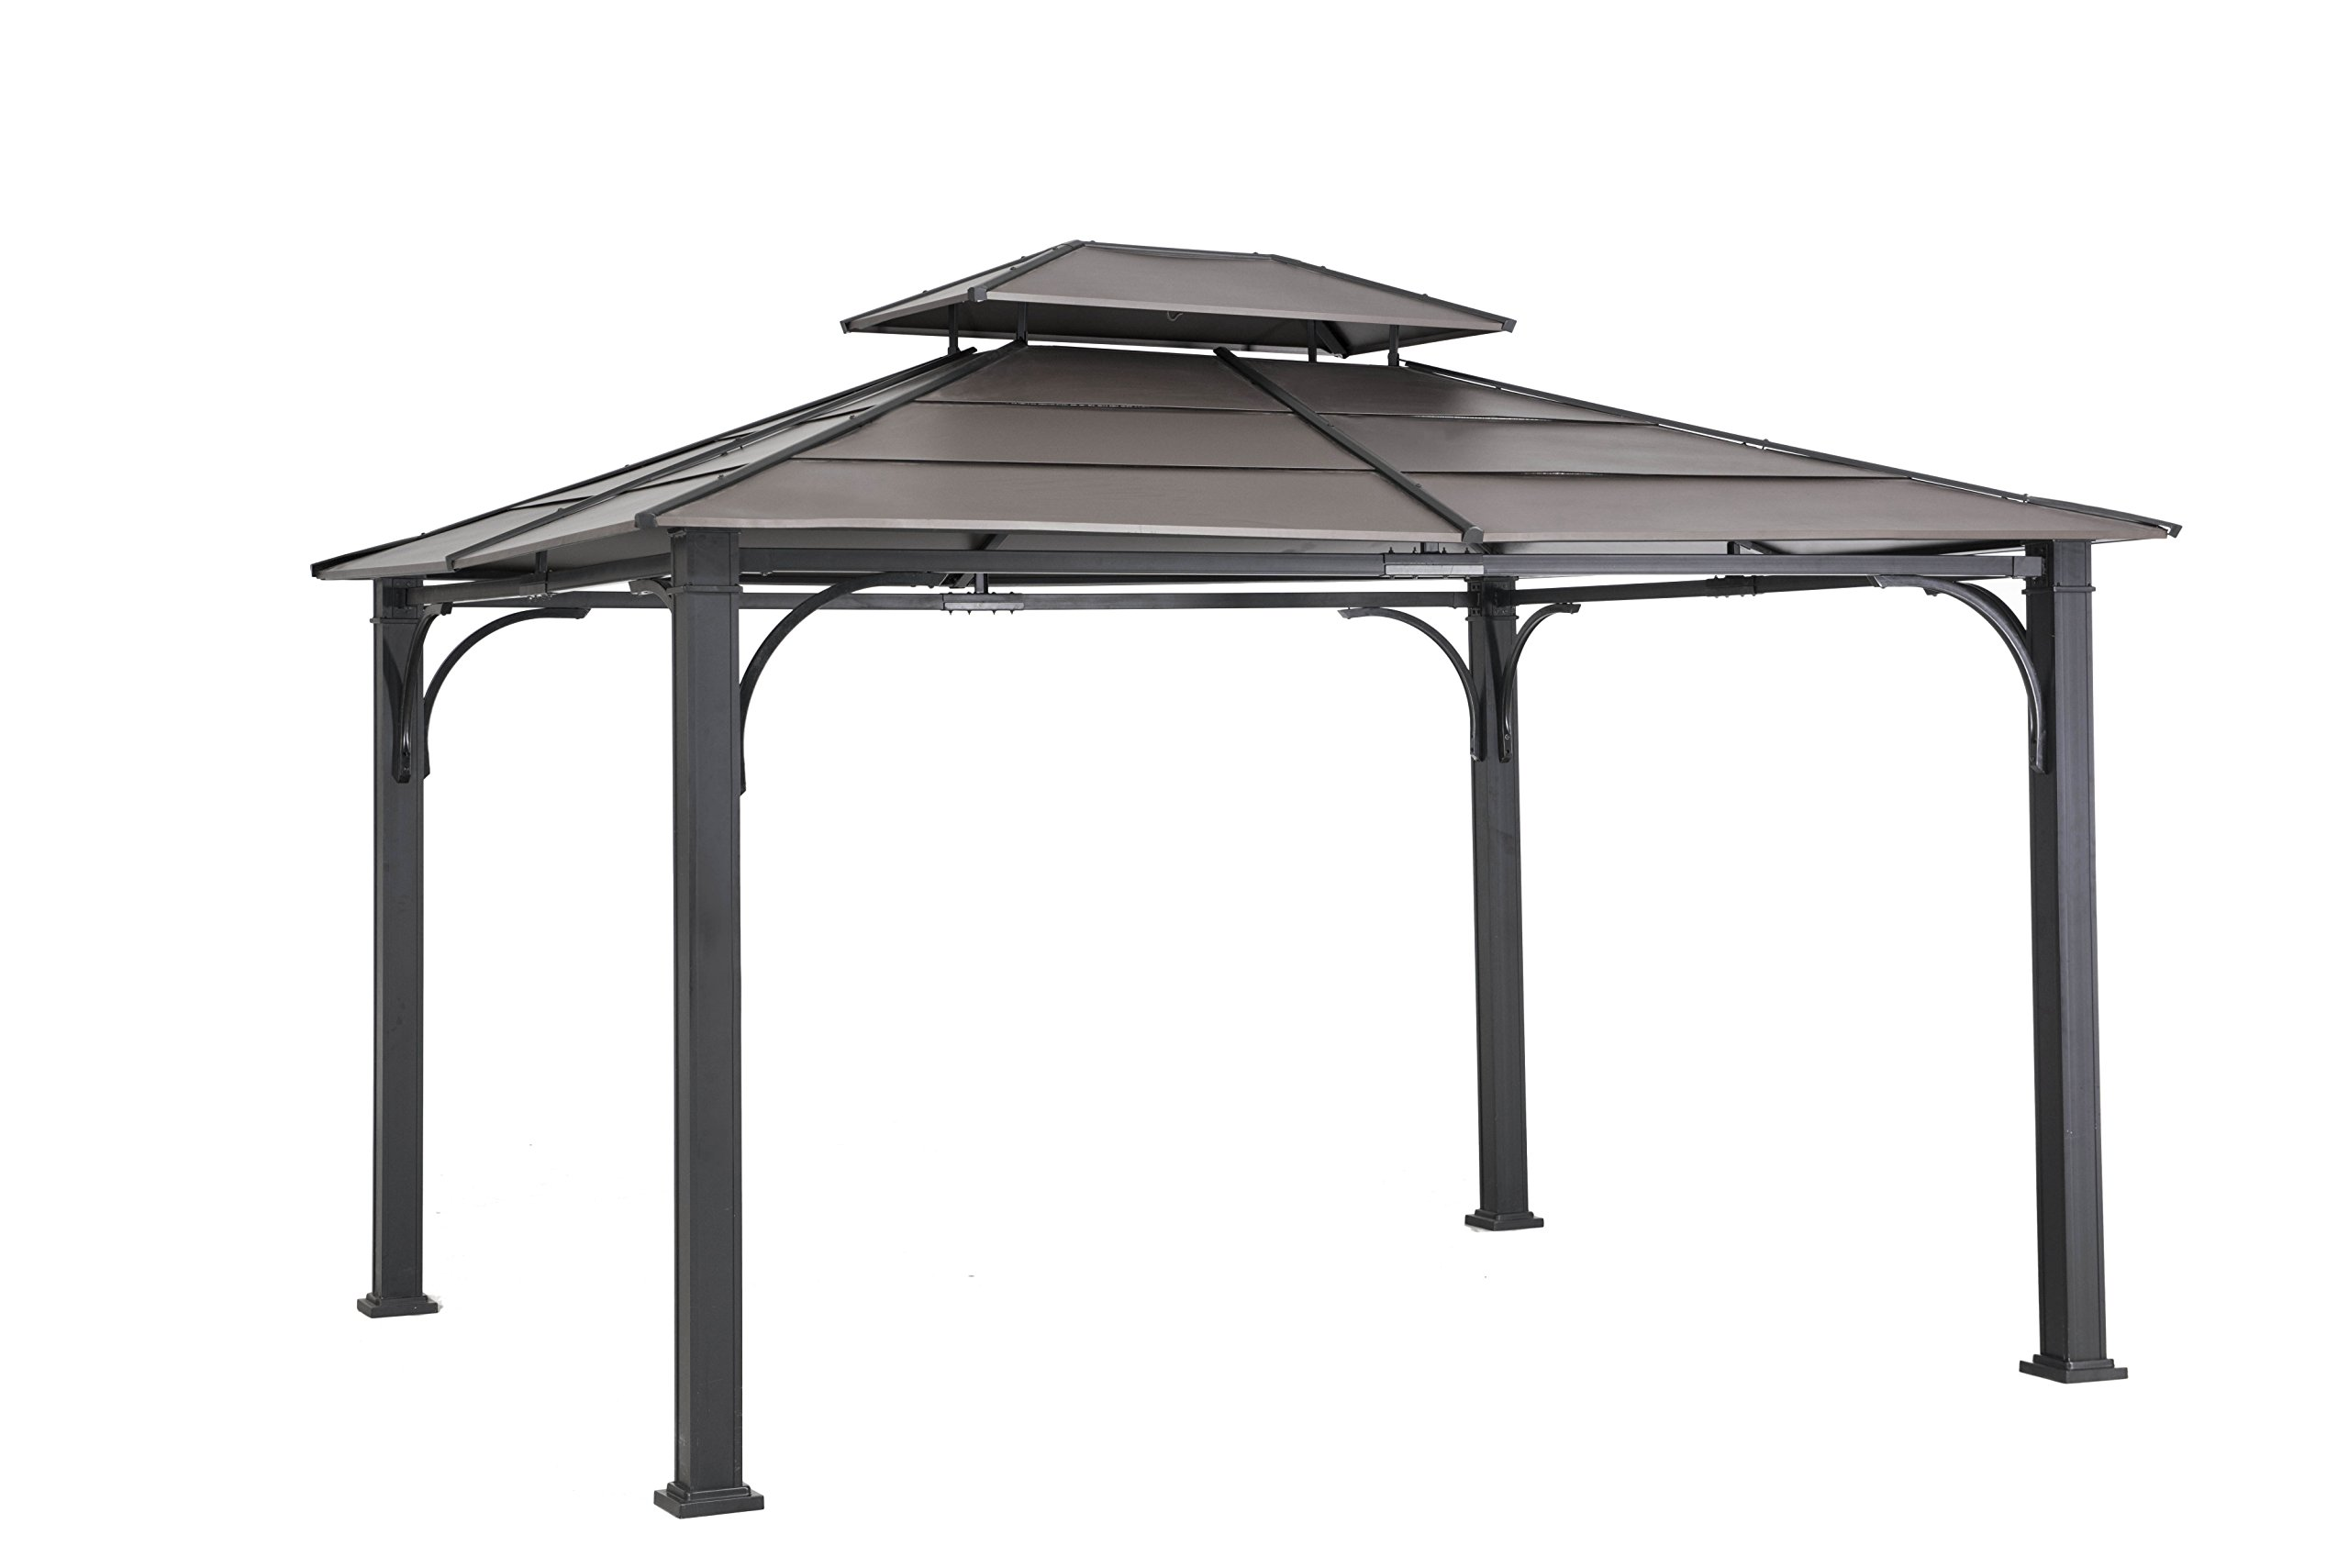 Cheap Hardtop Gazebo, Find Hardtop Gazebo Deals On Line At